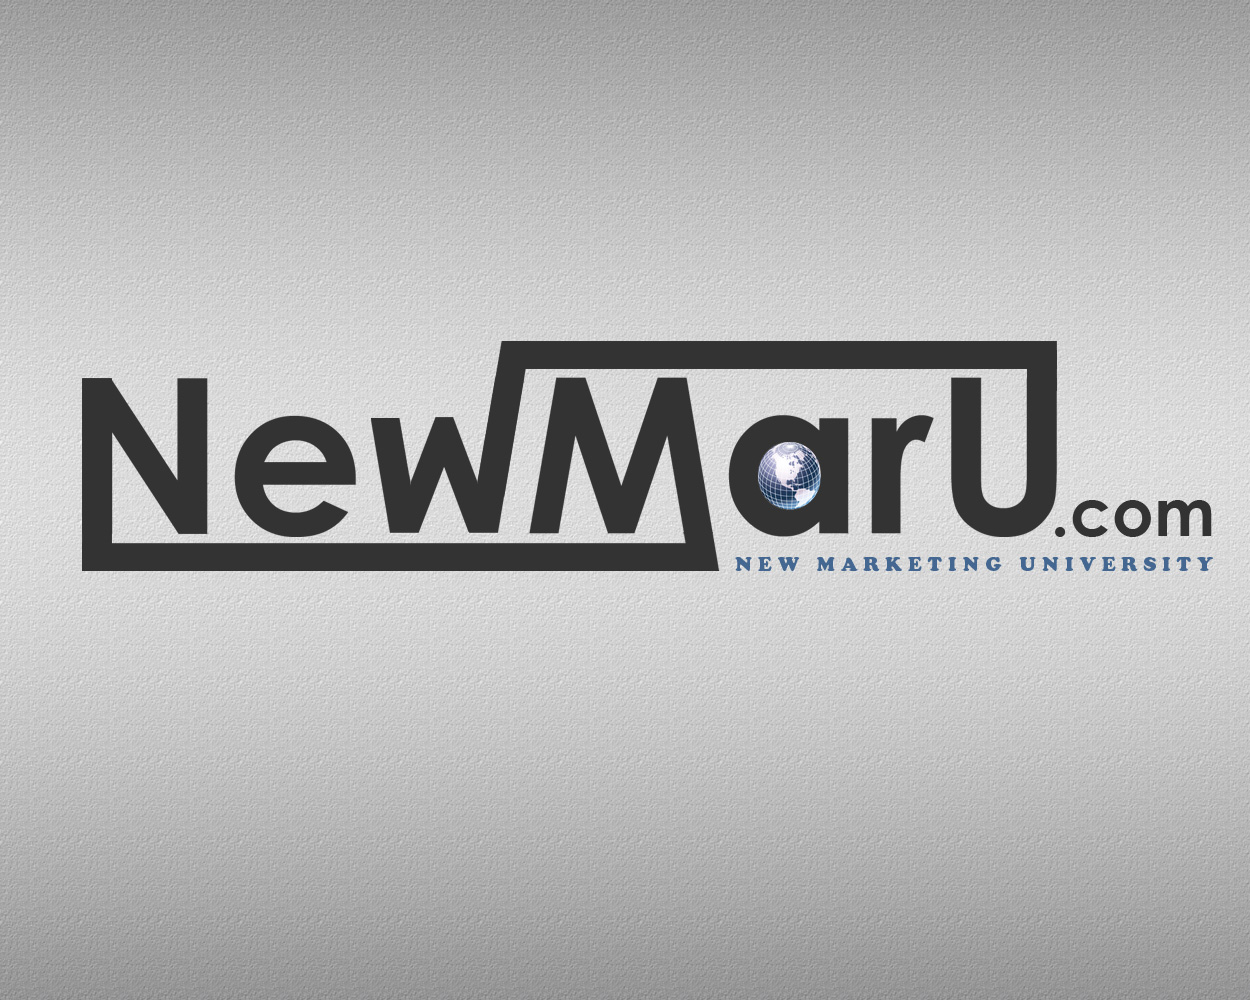 Logo Design by smokegroovechill - Entry No. 1 in the Logo Design Contest NewMarU.com (New Marketing University).